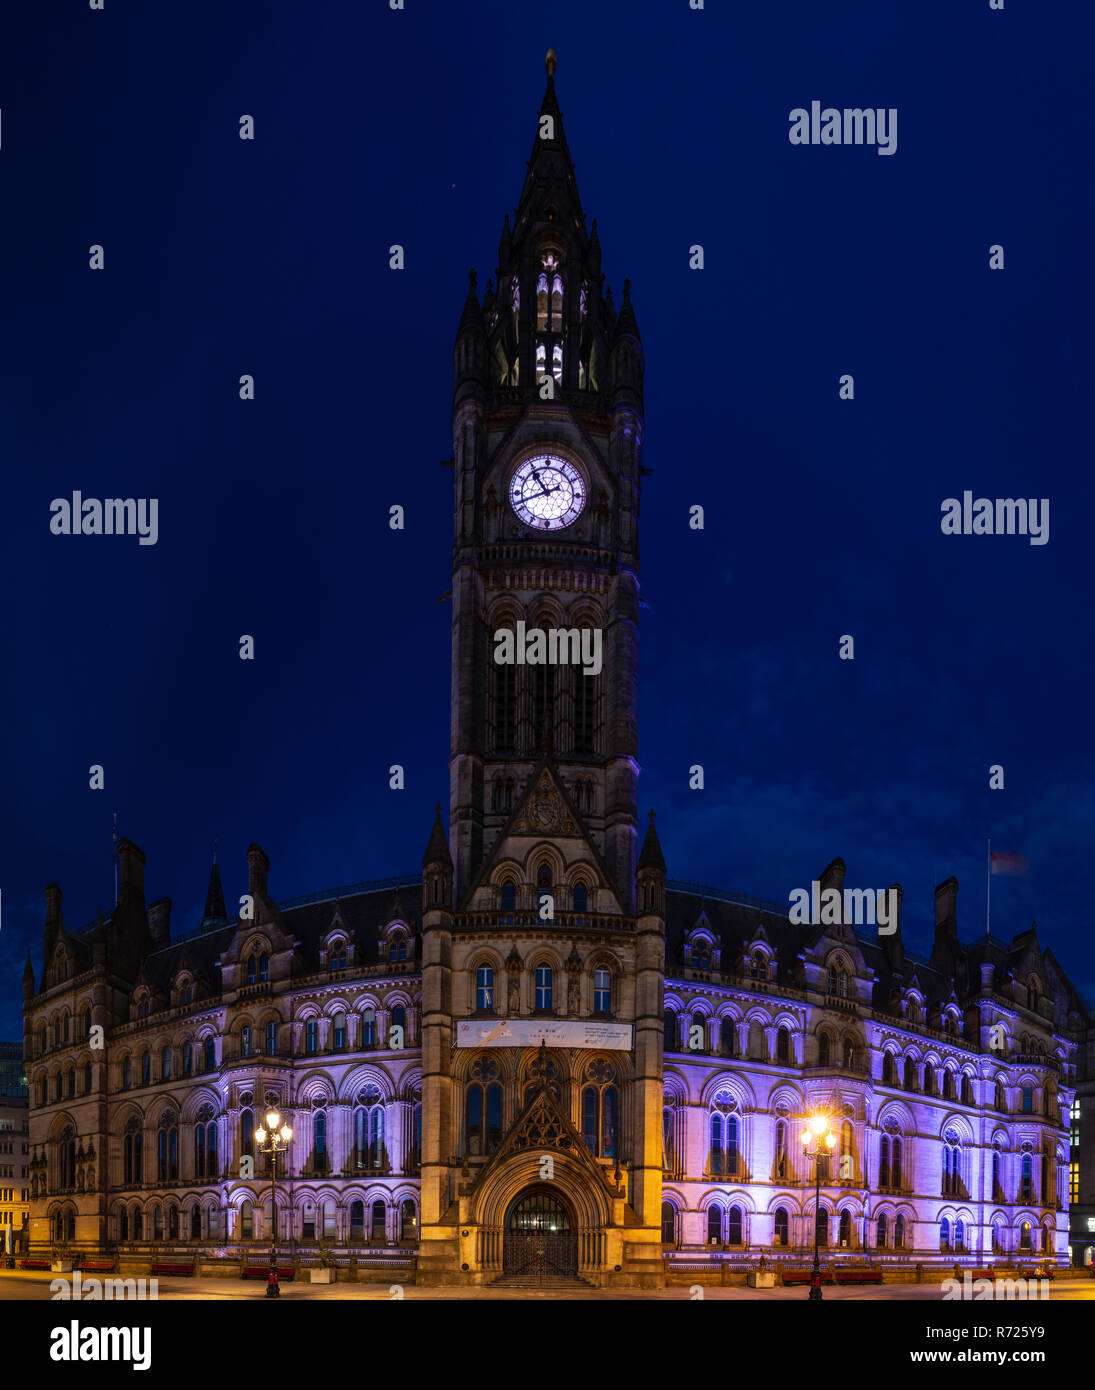 Manchester, England, UK - July 1, 2018: The gothic exterior and clock tower of Manchester Town Hall is lit at night on the city's Albert Square. - Stock Image